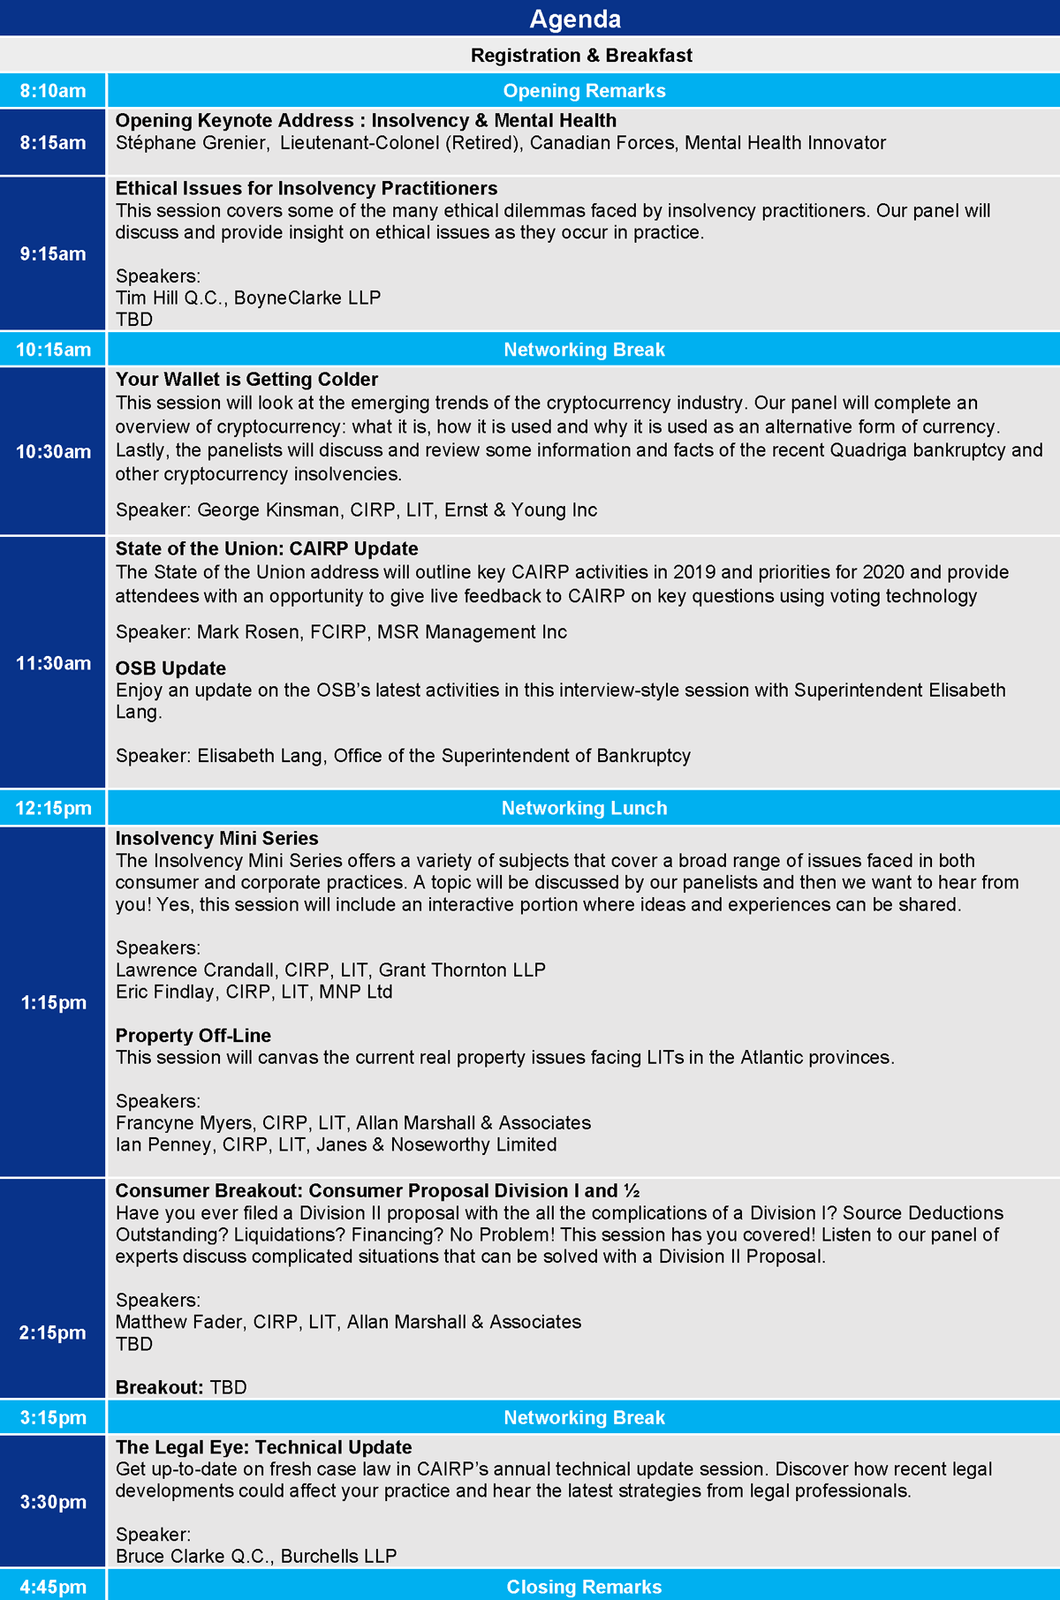 Forums_2020/Halifax-Agenda-2020.png